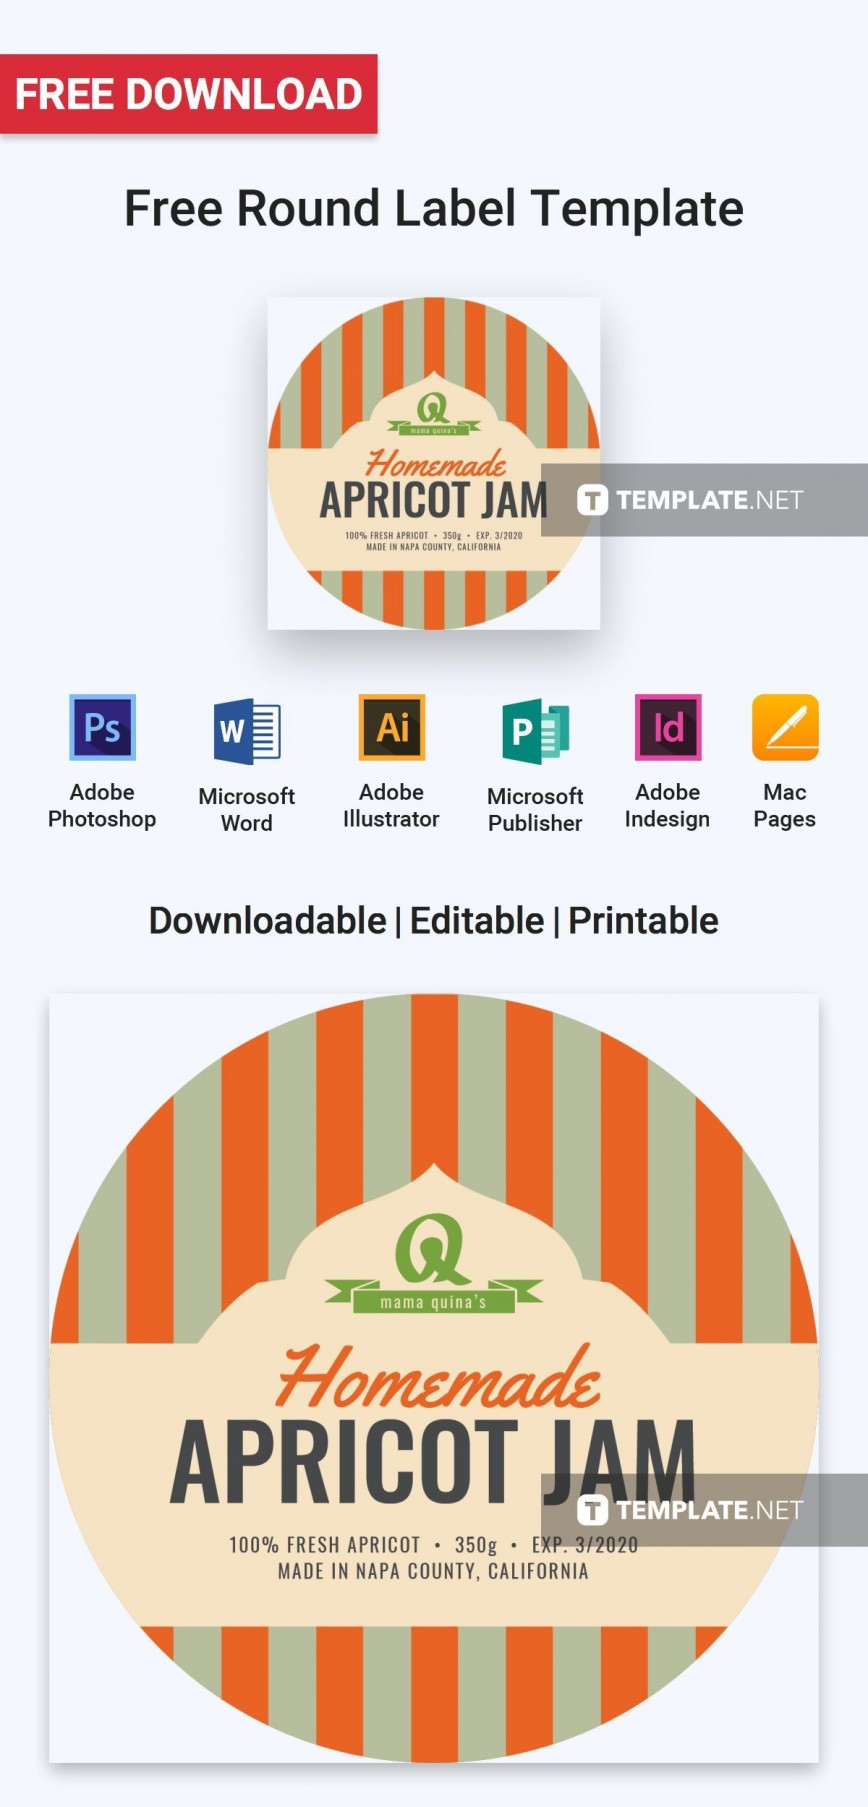 003 Surprising Microsoft Word Label Template Free Download High Definition 868